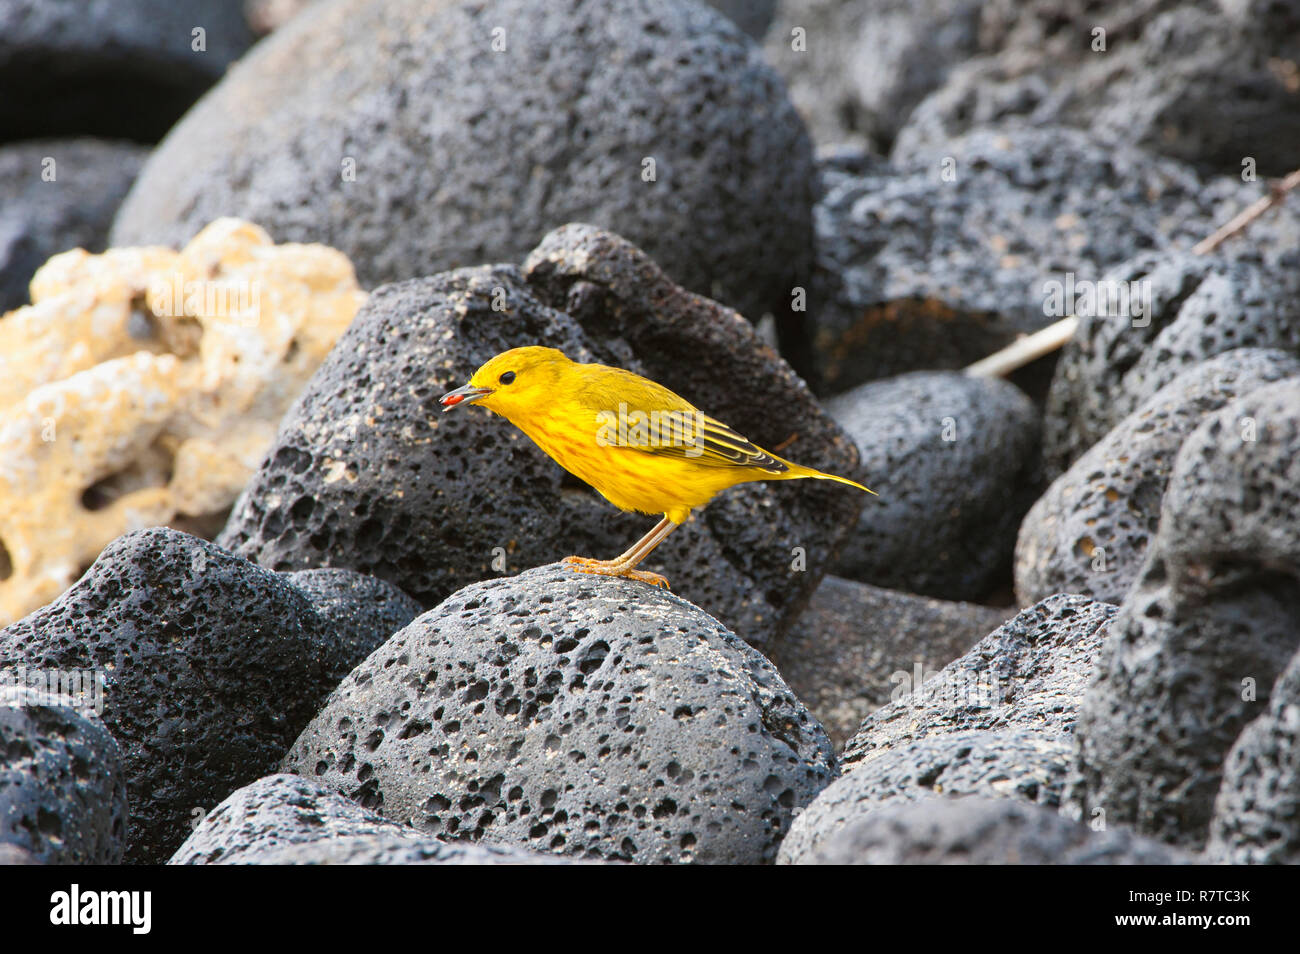 American Yellow Warbler (Dendroica petechia aureola), Galápagos - Stock Image